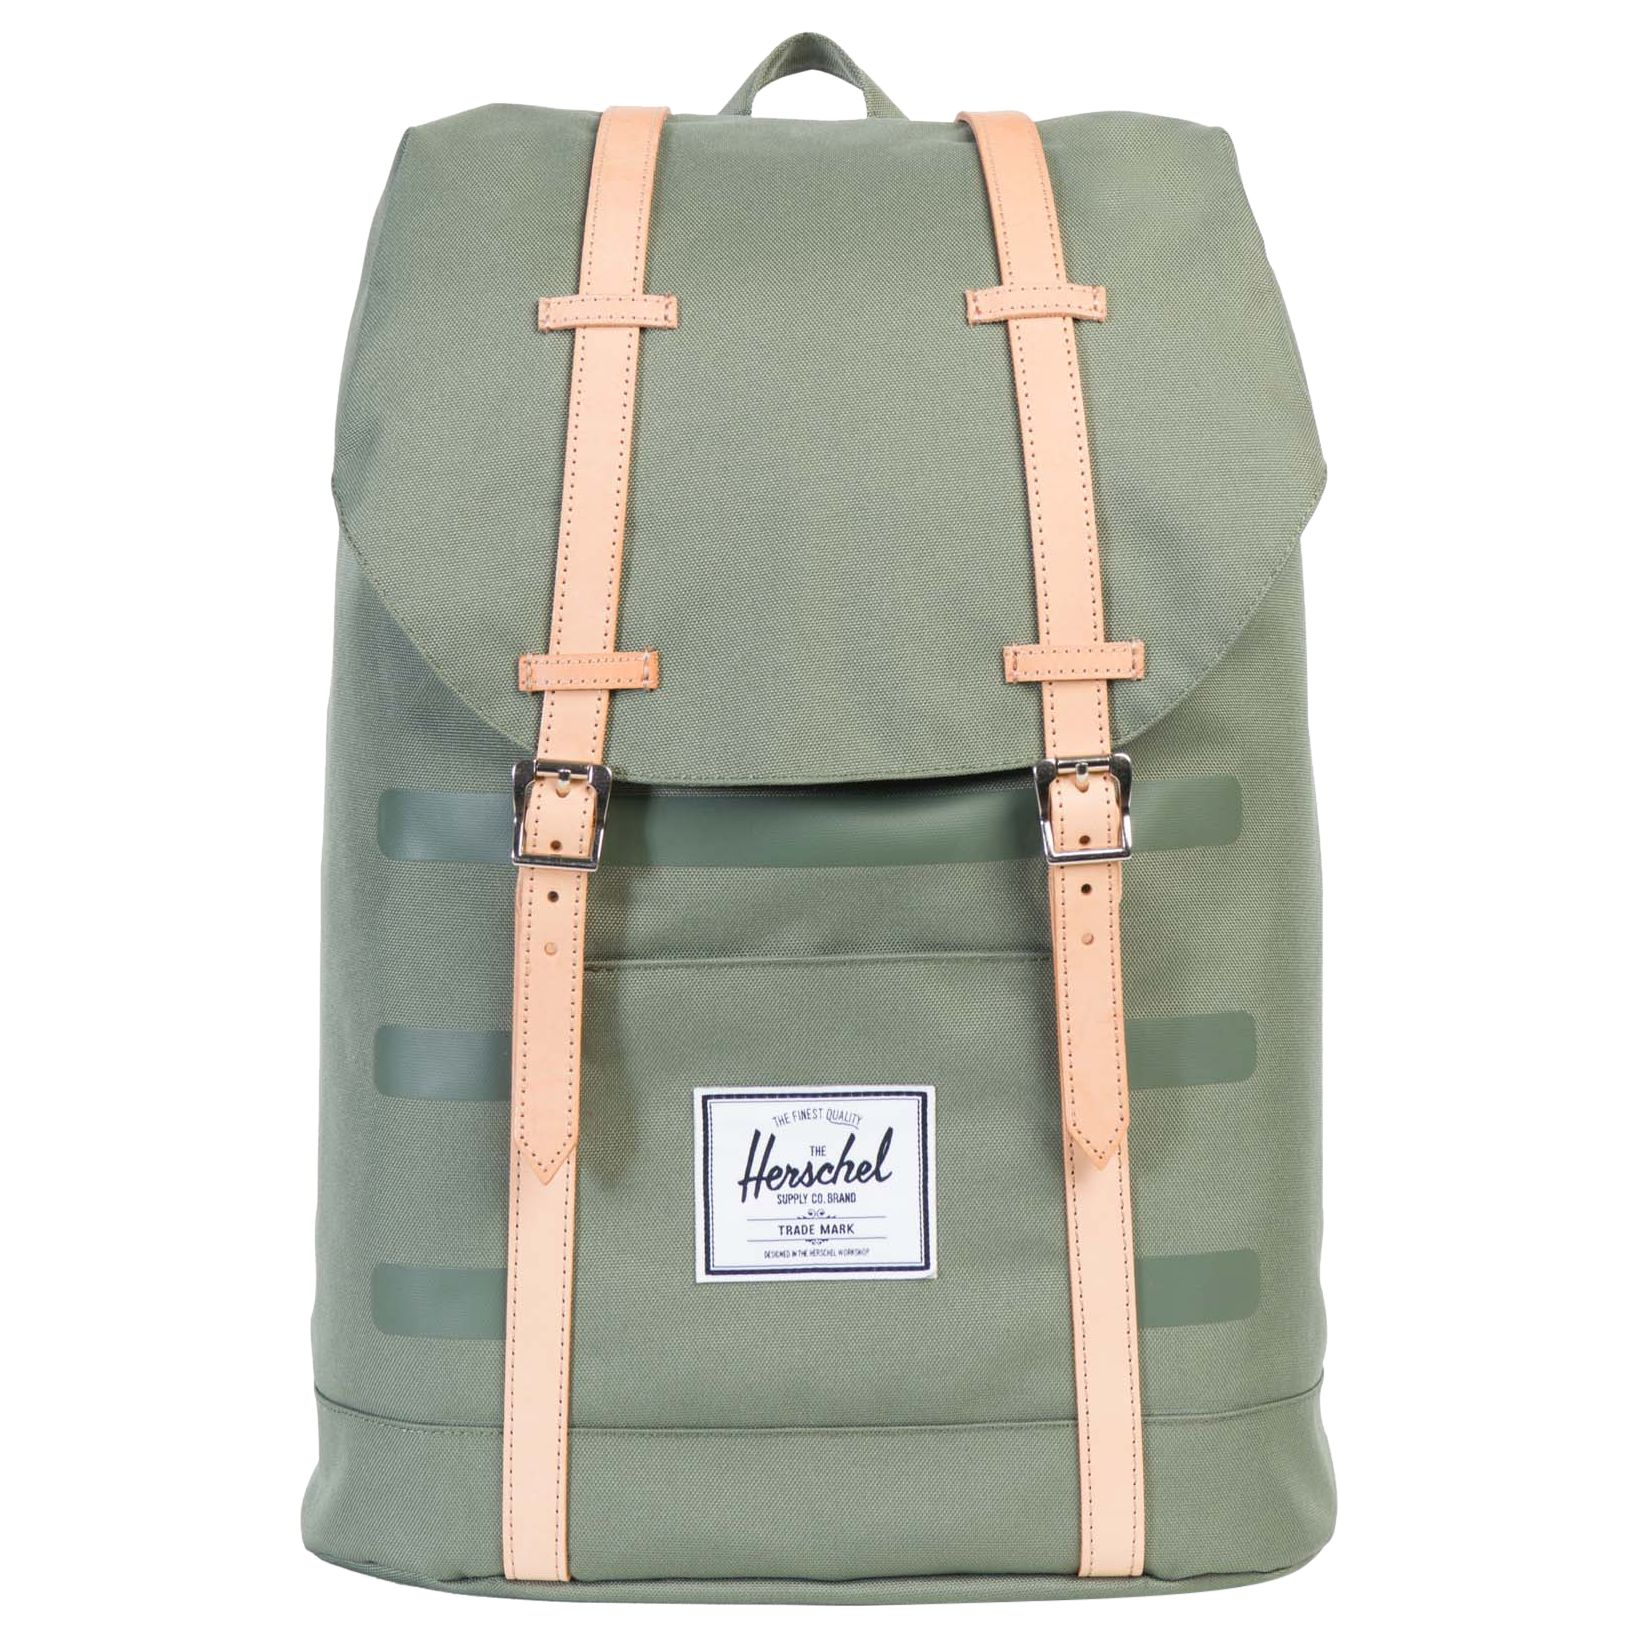 Herschel Supply Co. Herschel Supply Co. Retreat Backpack, Deep Lichen Green